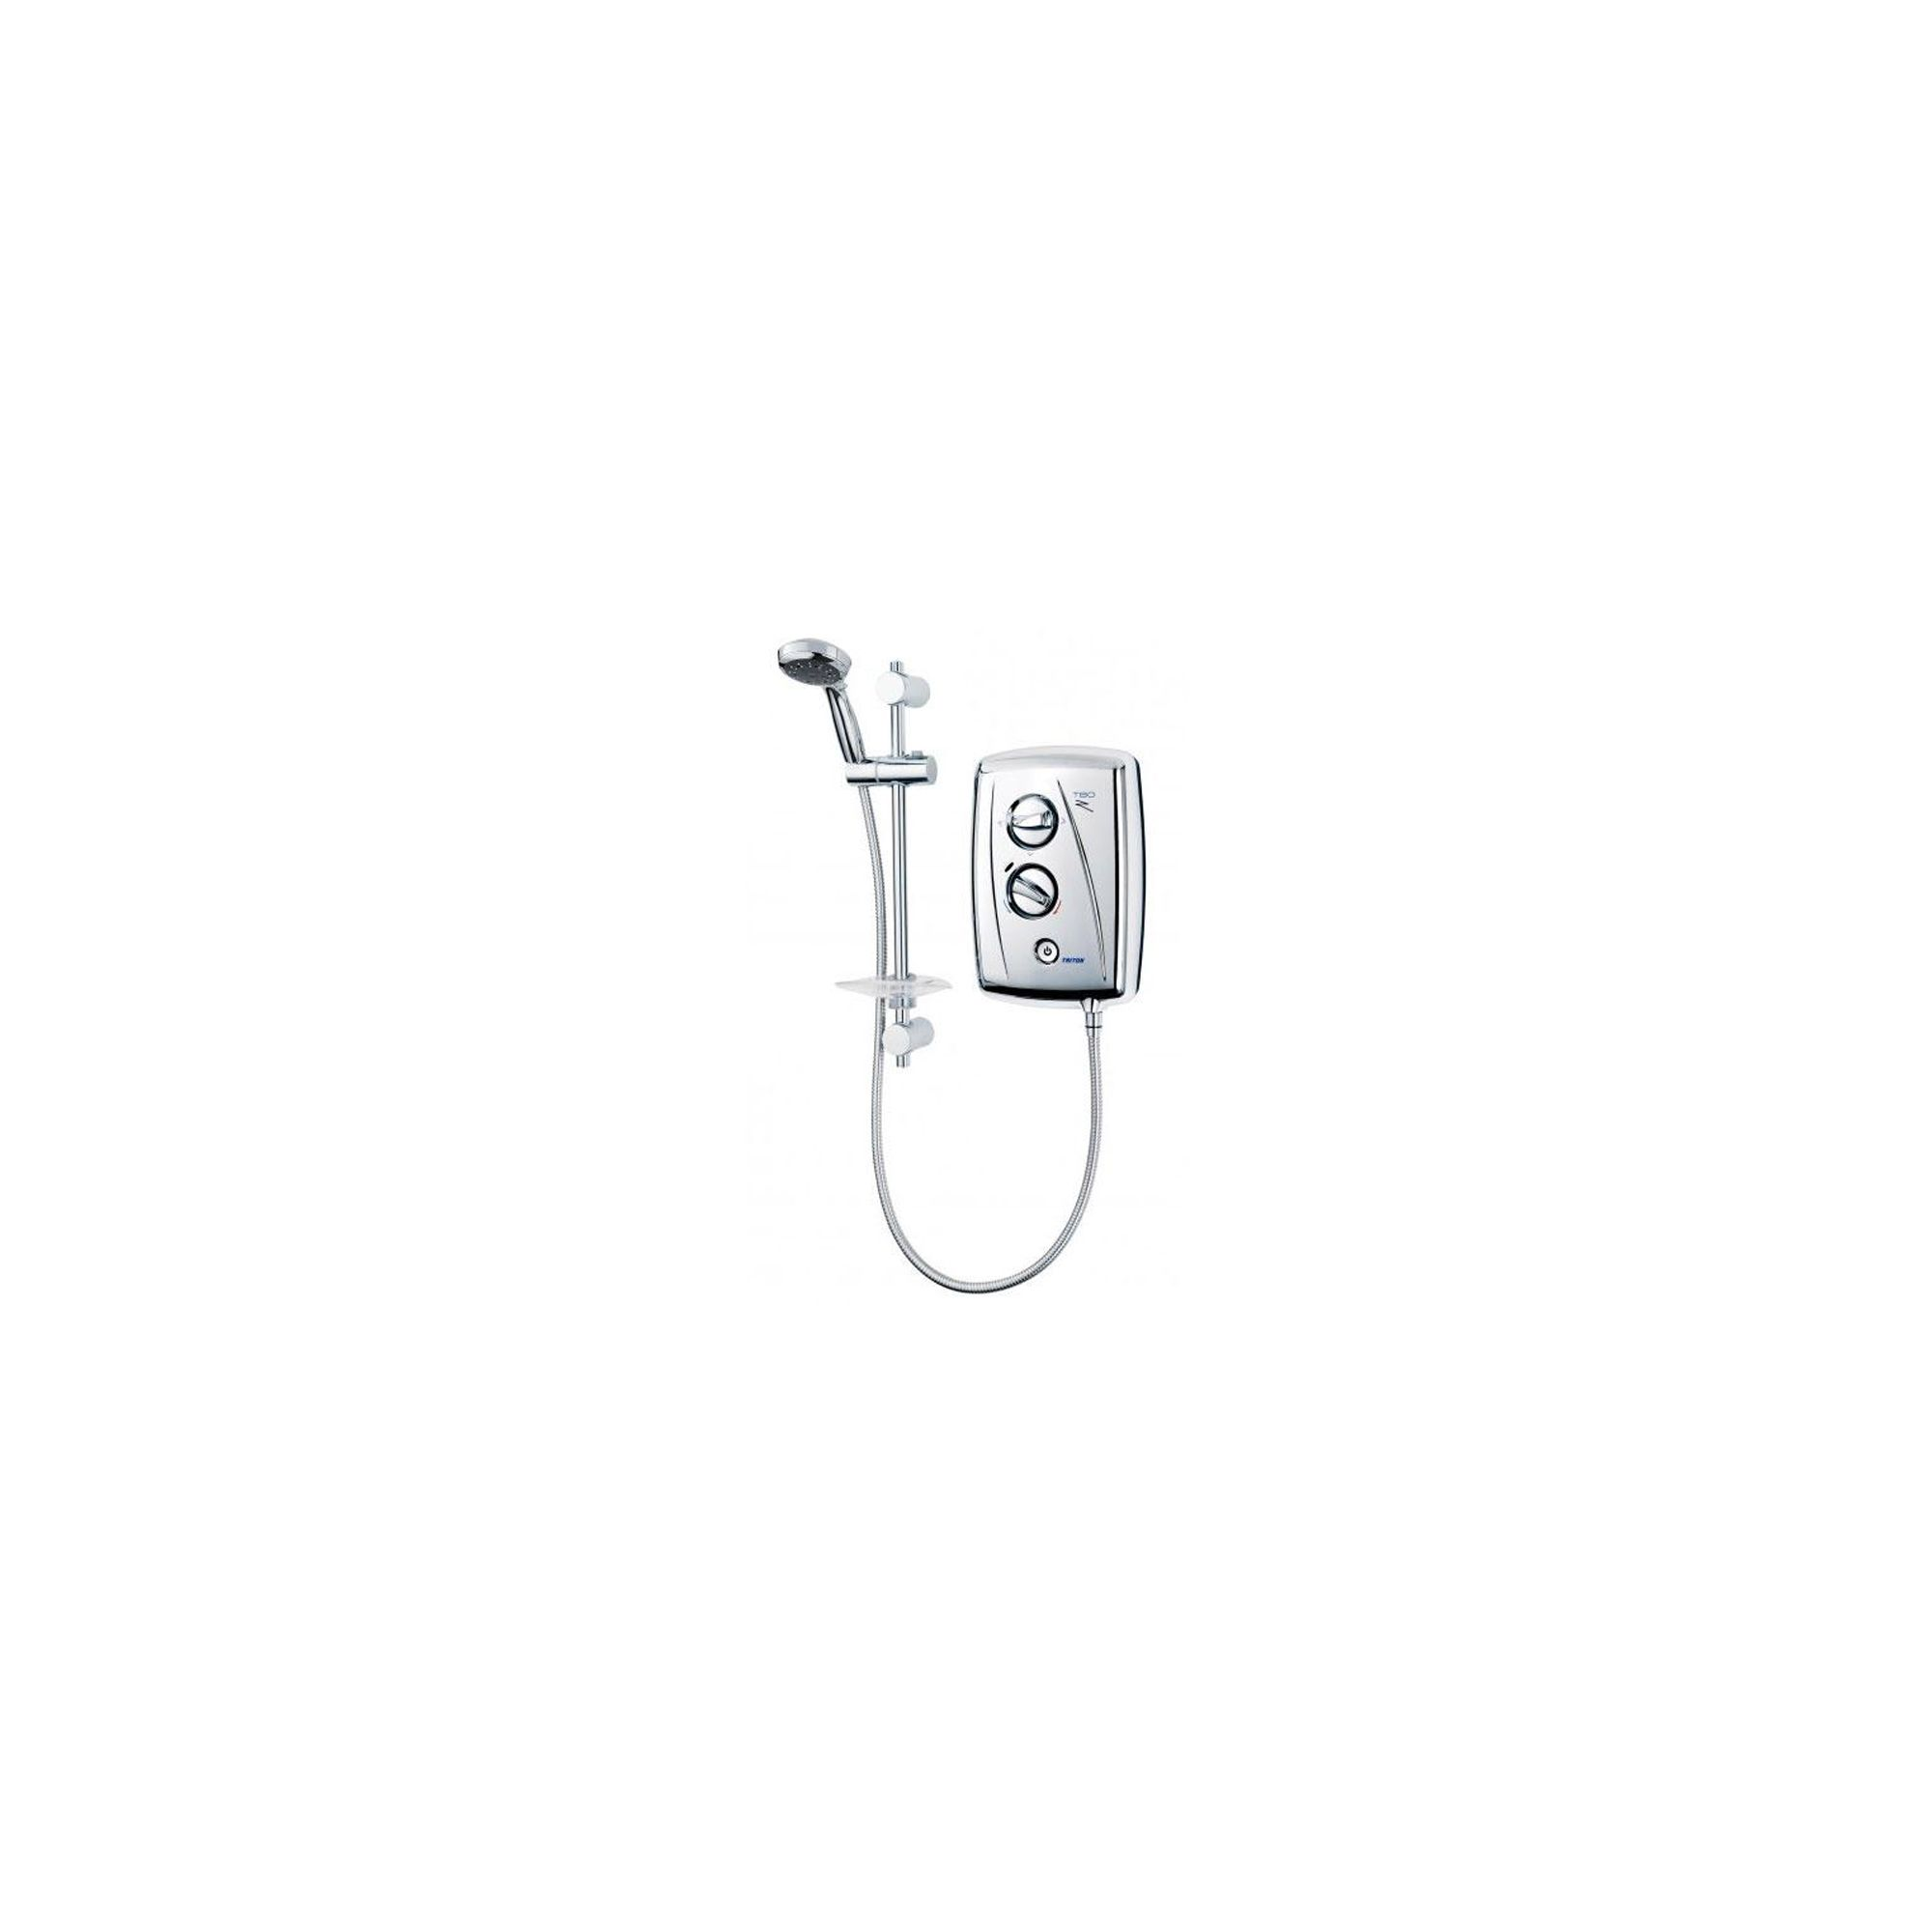 Triton T80Z Fast-Fit Electric Shower Chrome 10.5 kW at Tescos Direct